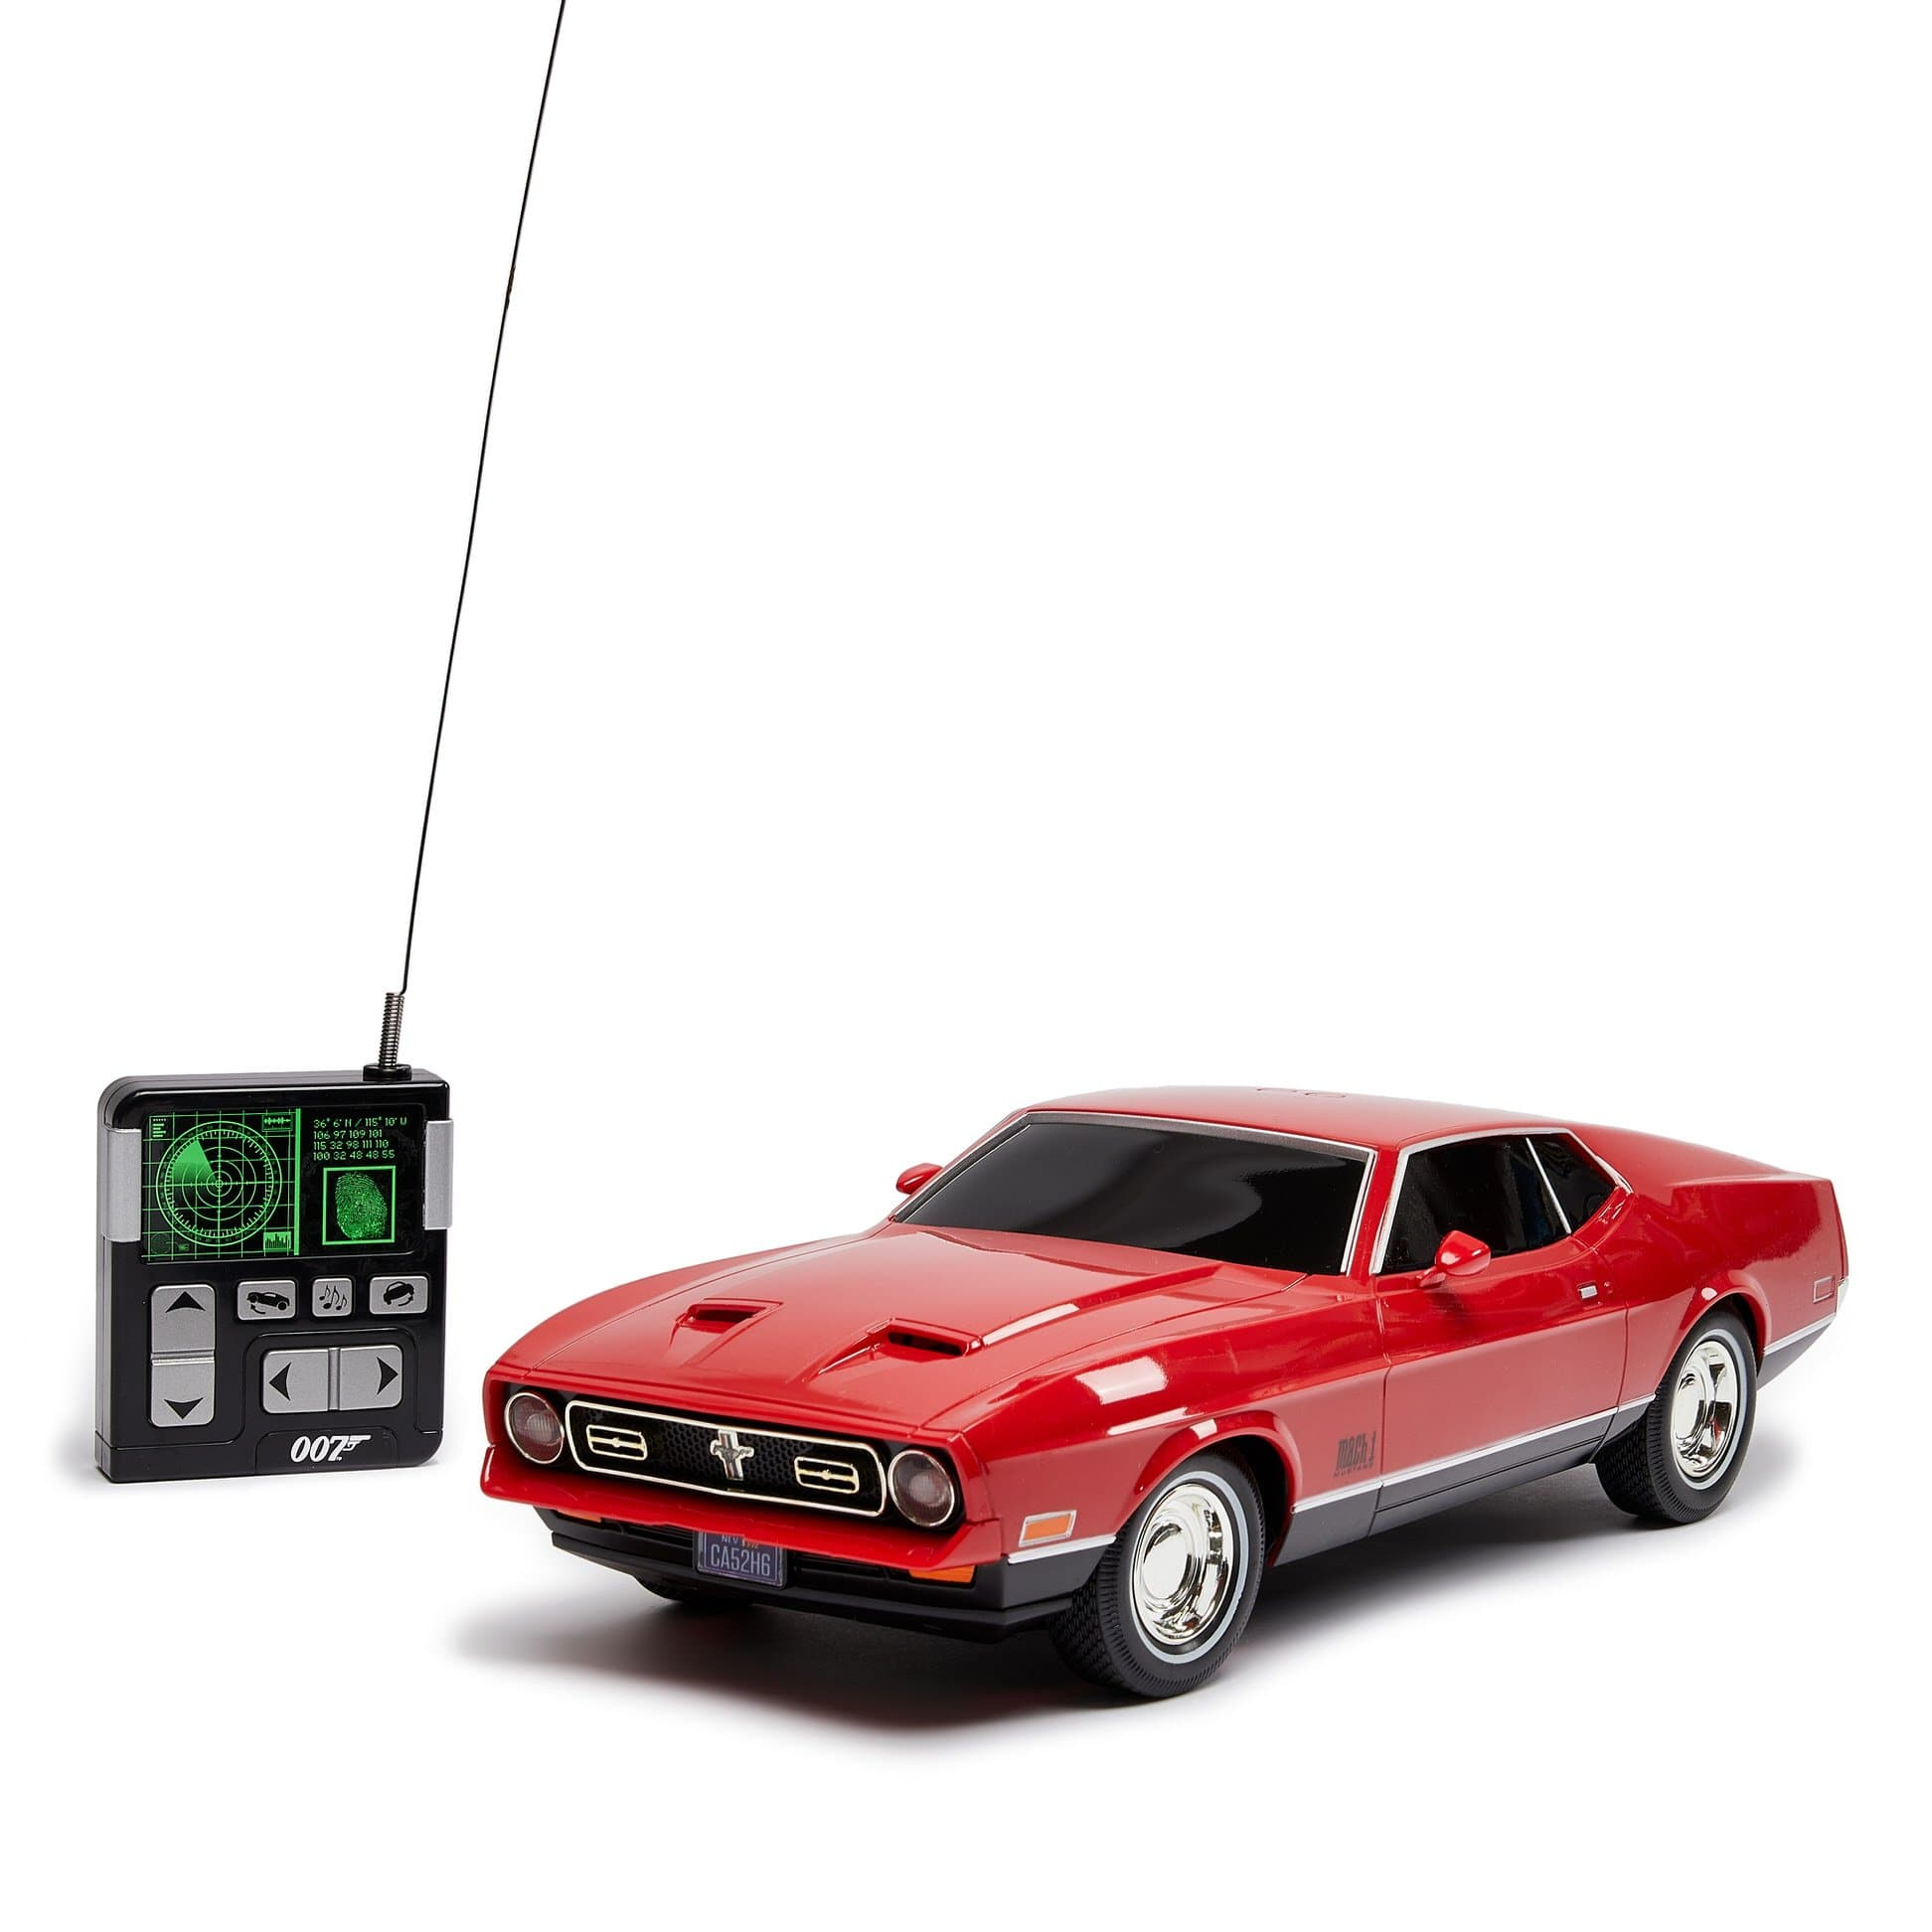 007 Ford Mustang Remote Control Car - Diamonds Are Forever Edition